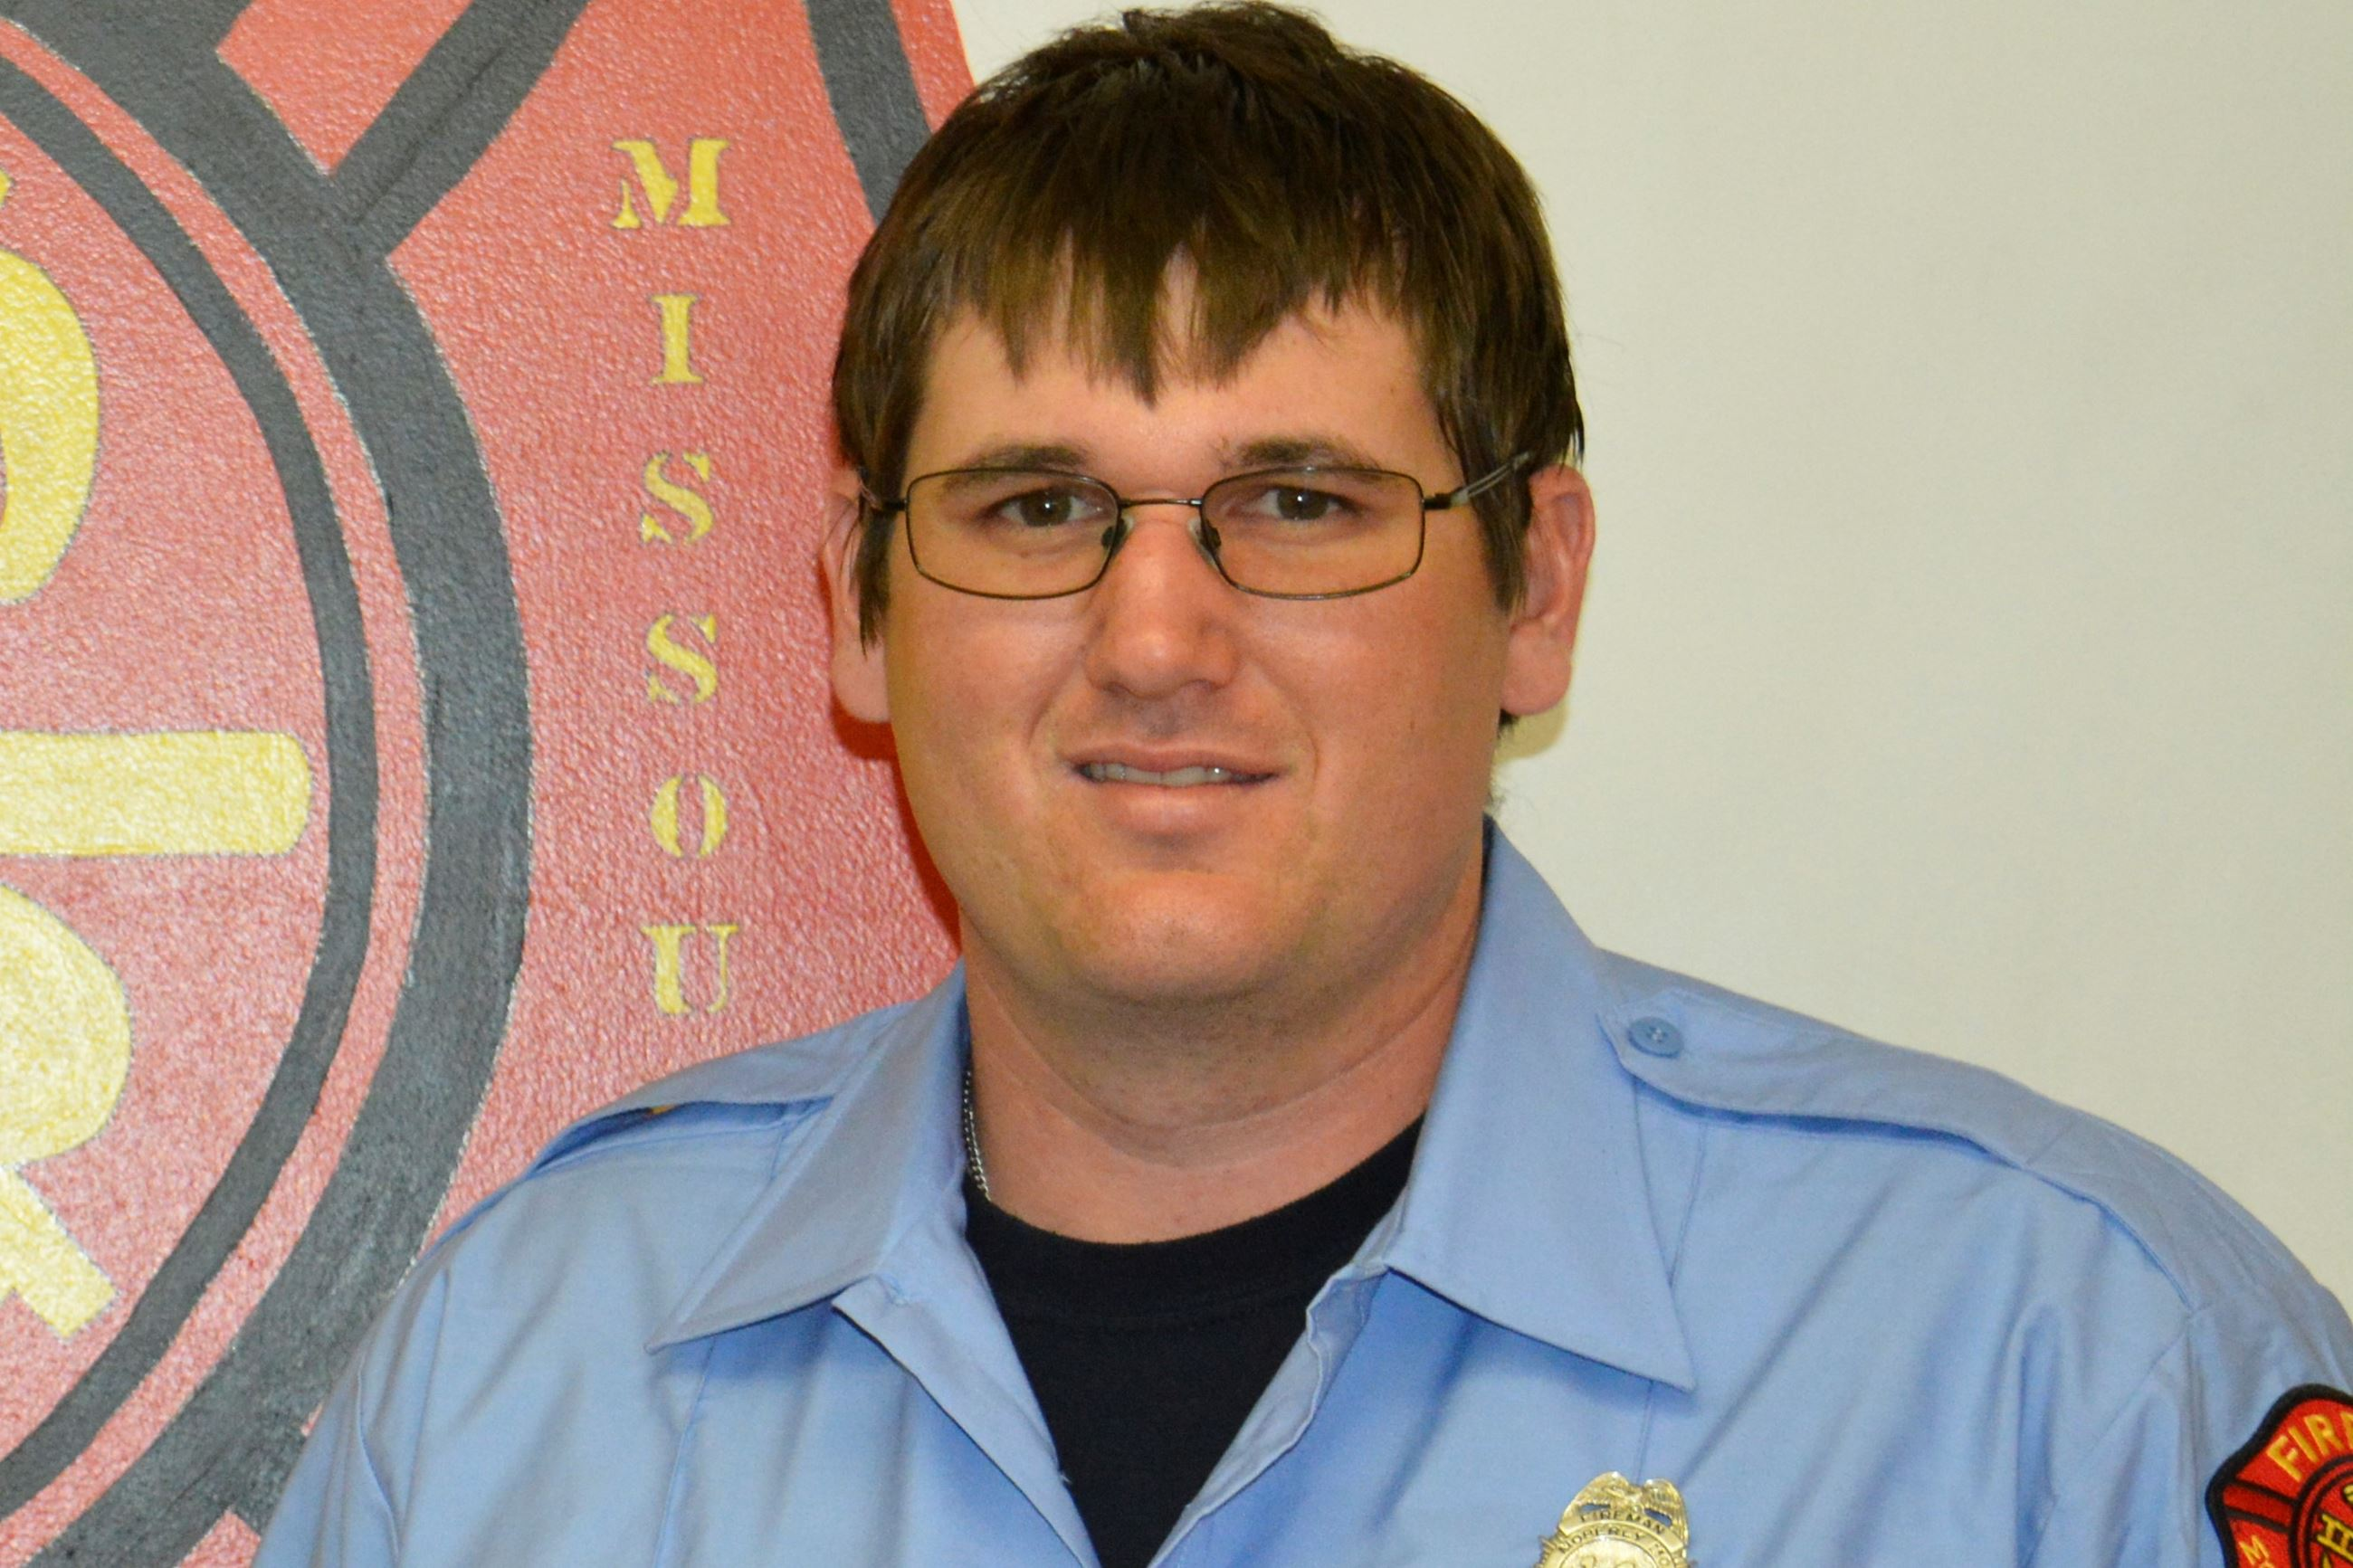 Cody Westhues firefighter